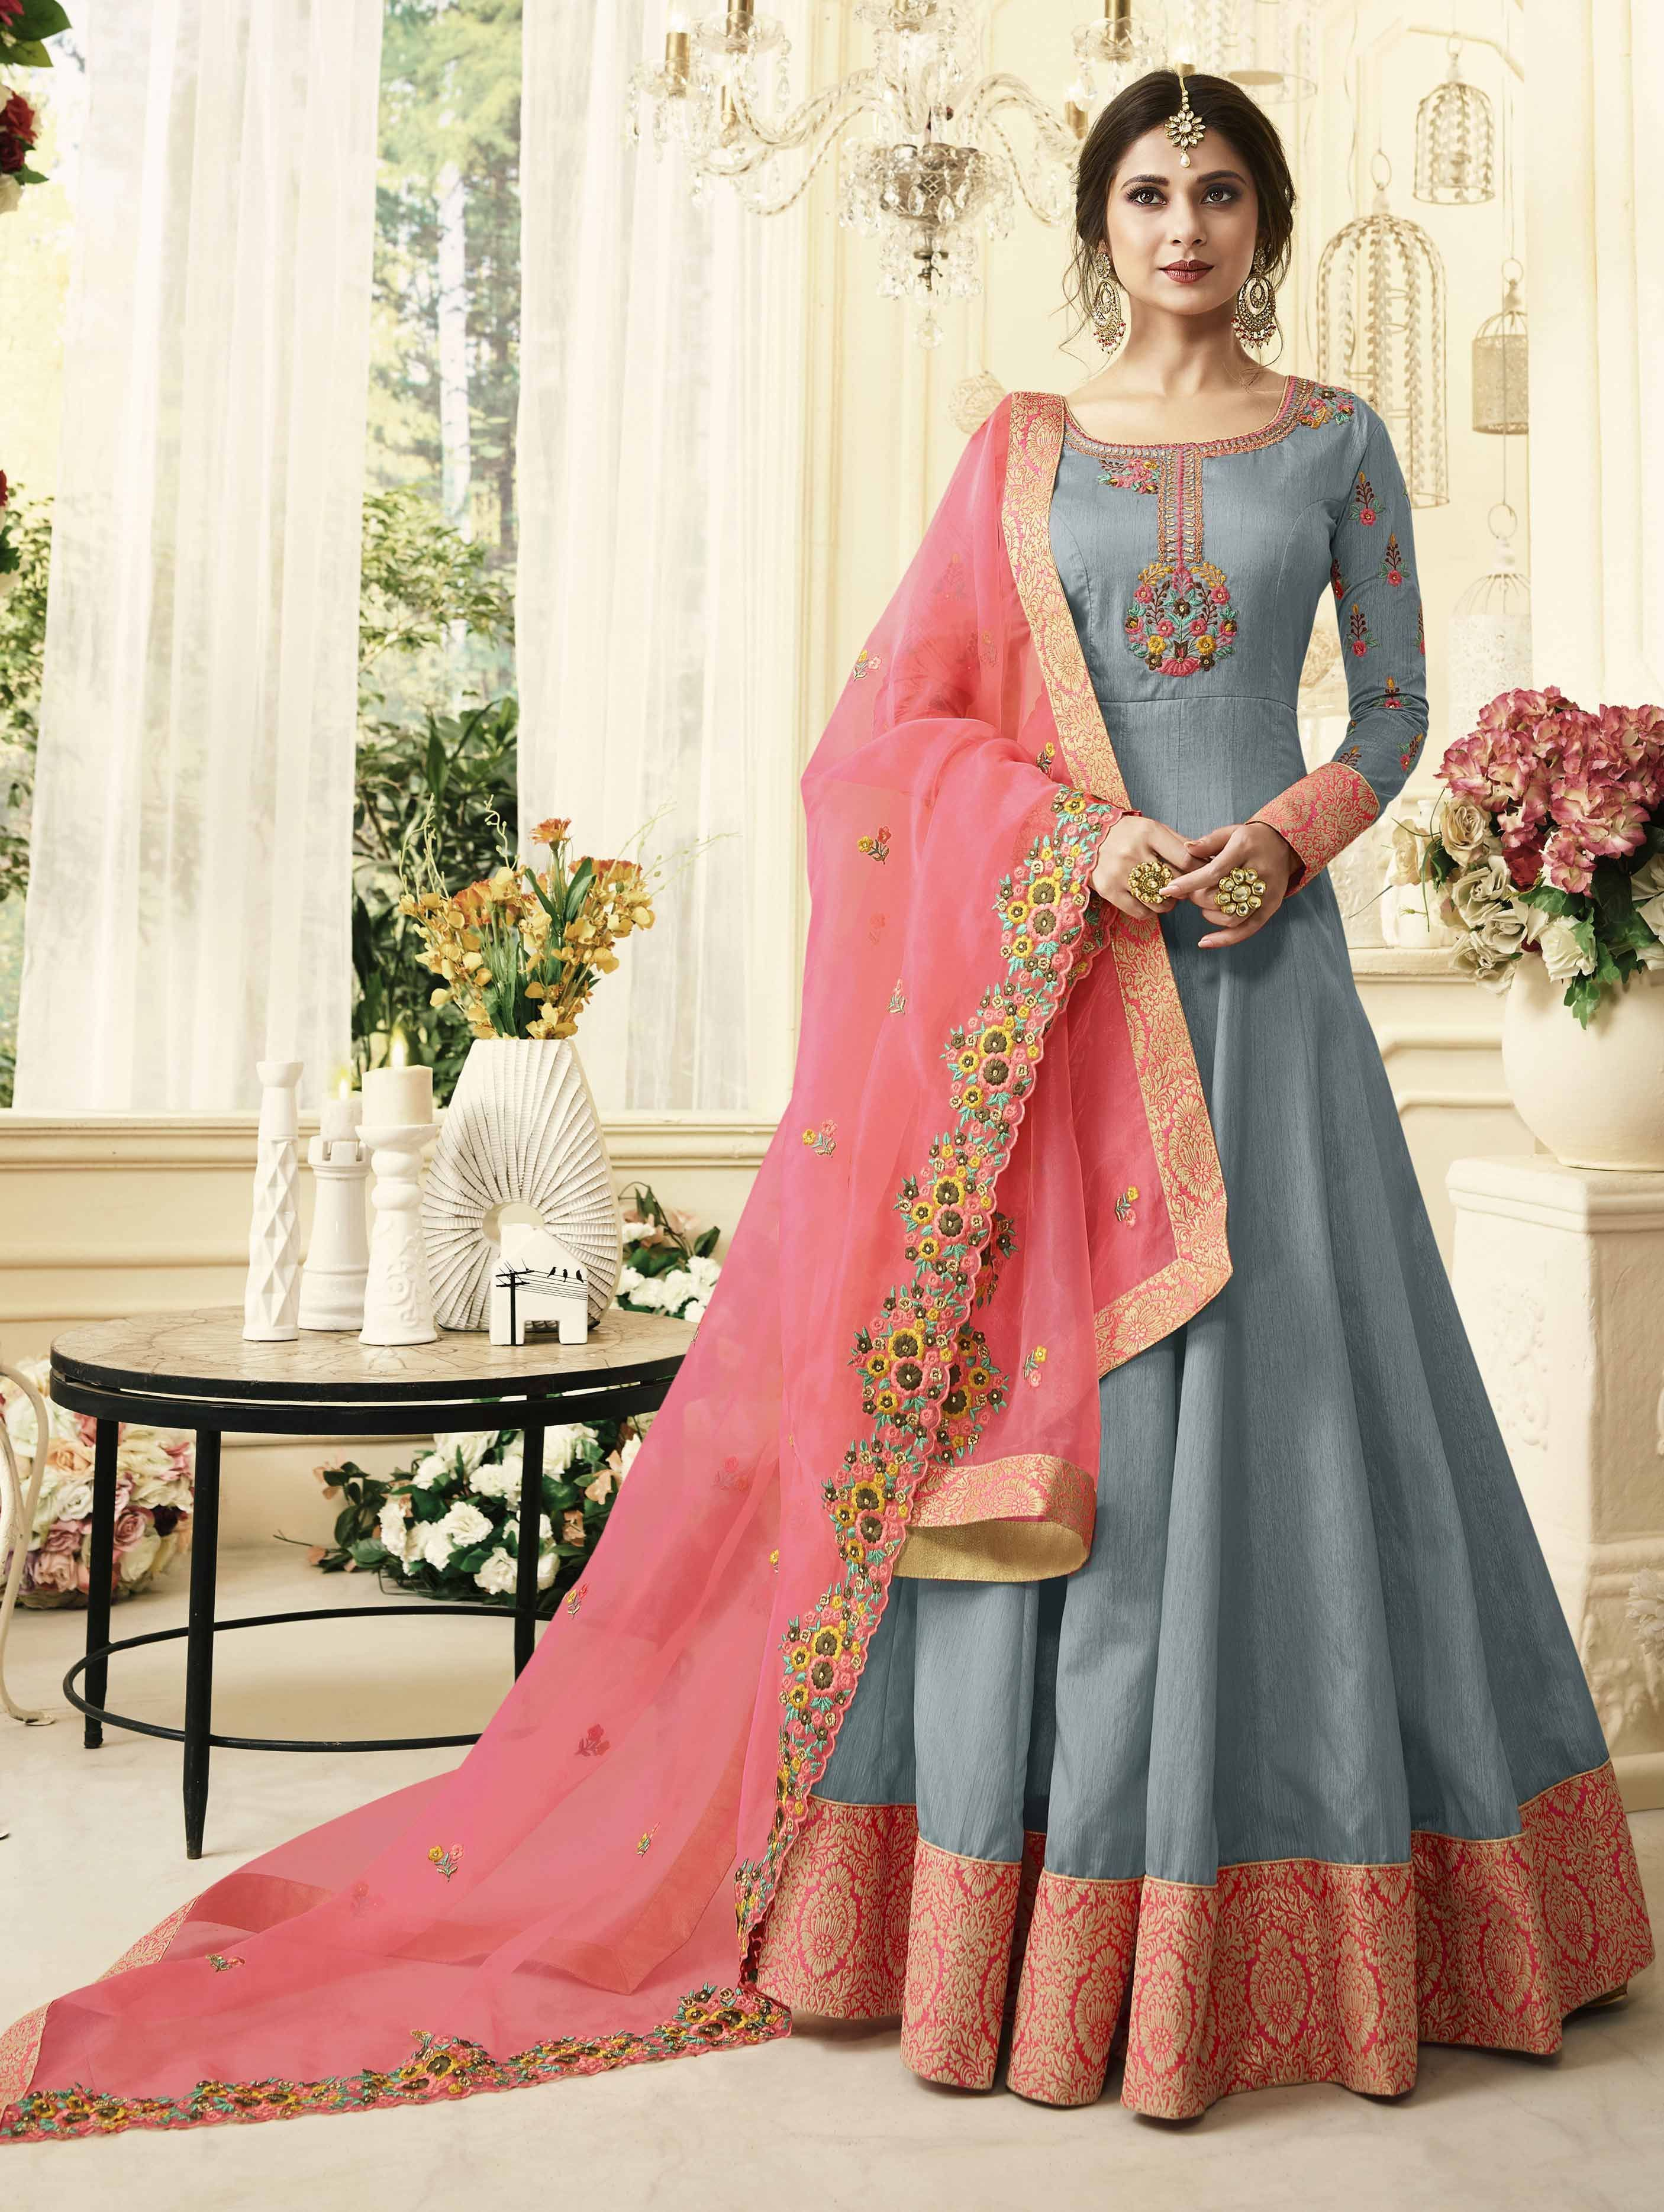 7091deba23 Jennifer Winget Grey Banarasi Jacquard Anarkali Suit with Embroidered  Dupatta